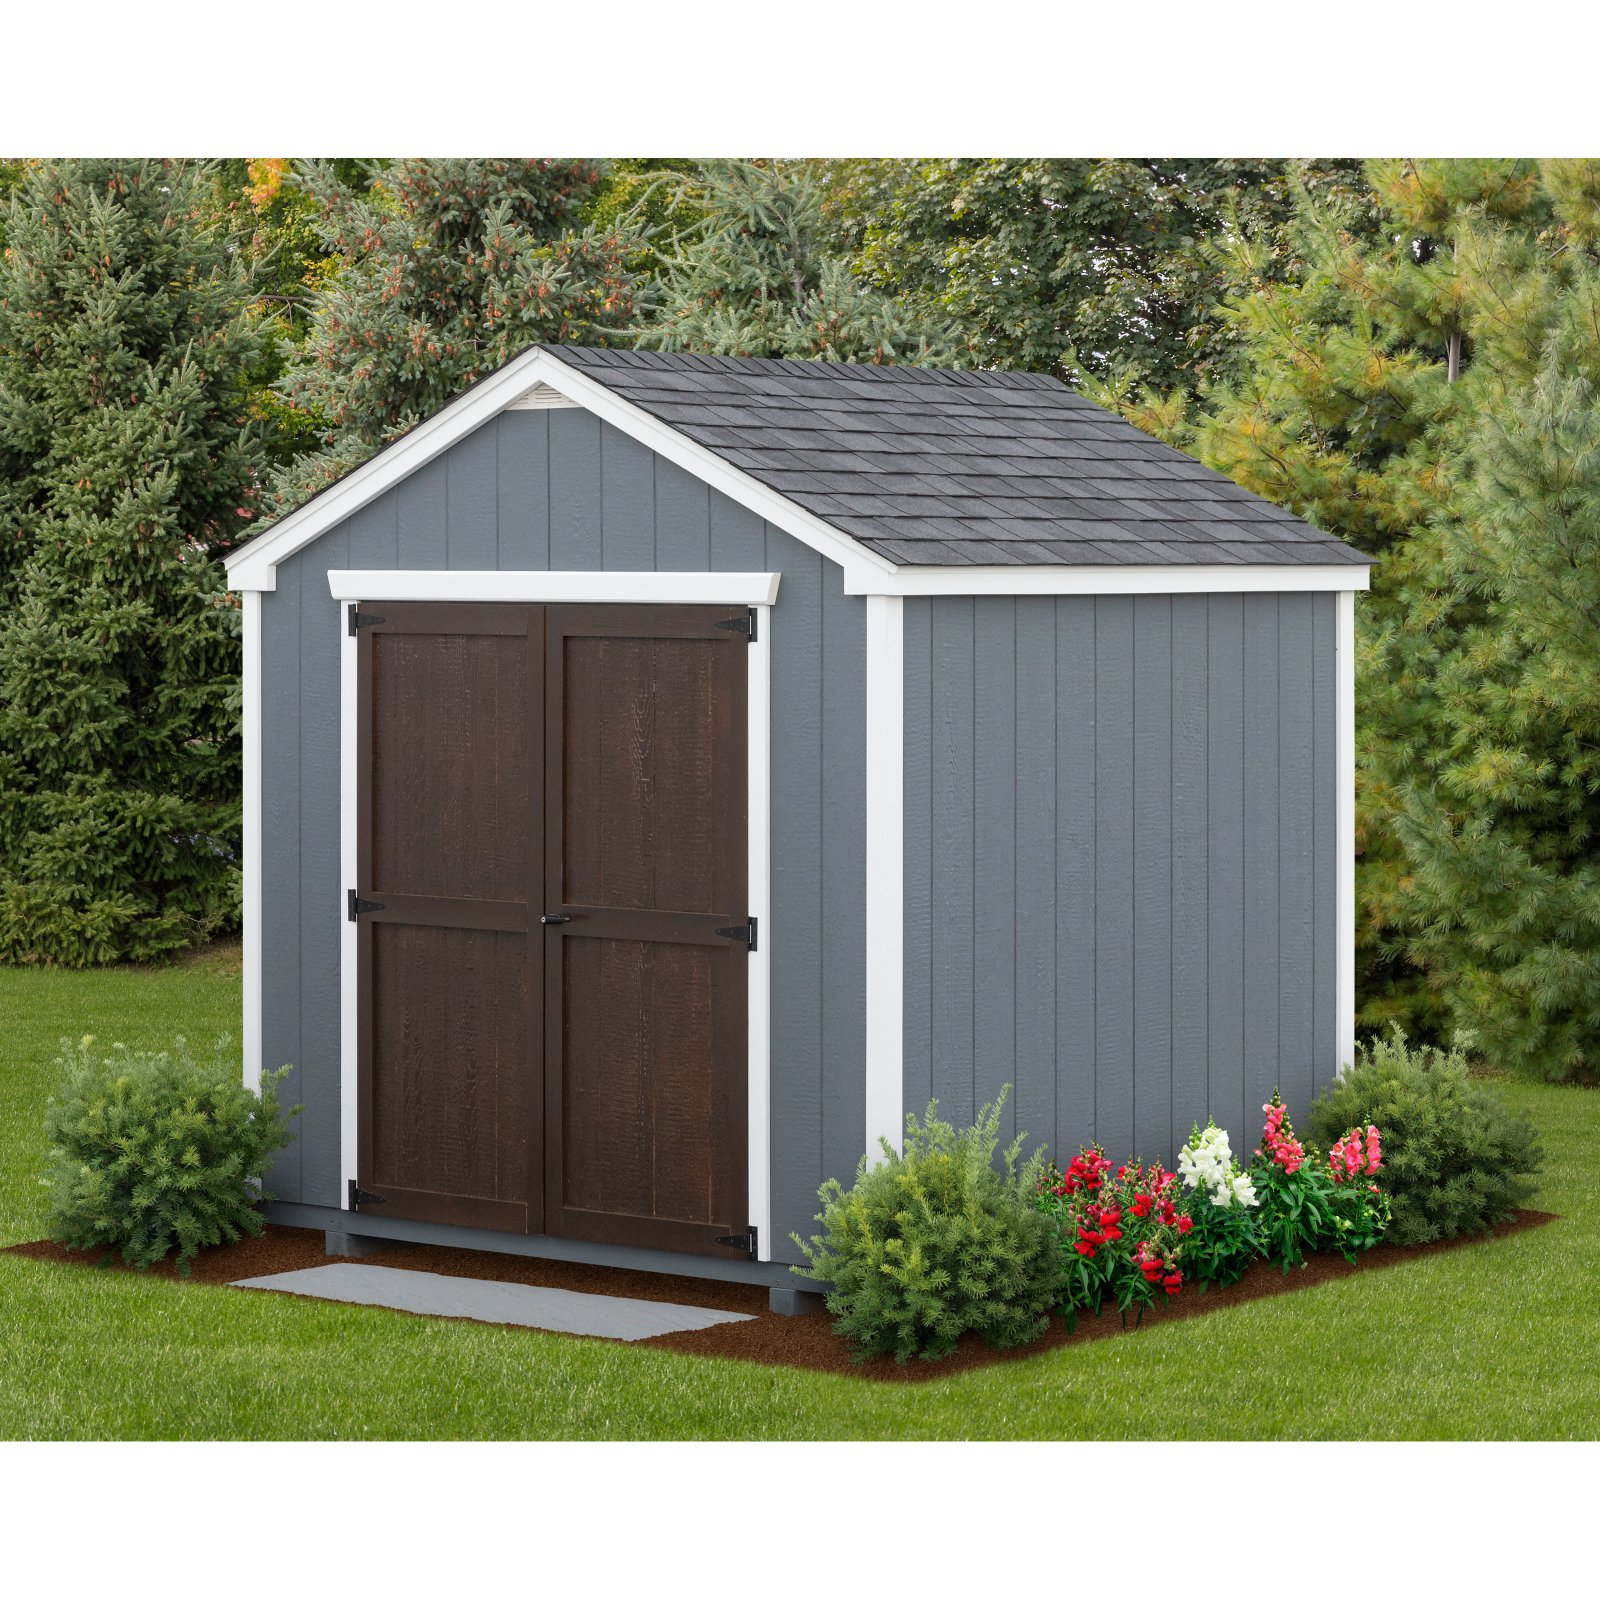 YardCraft 8 ft. x 8 ft. Edgemont Garden Shed